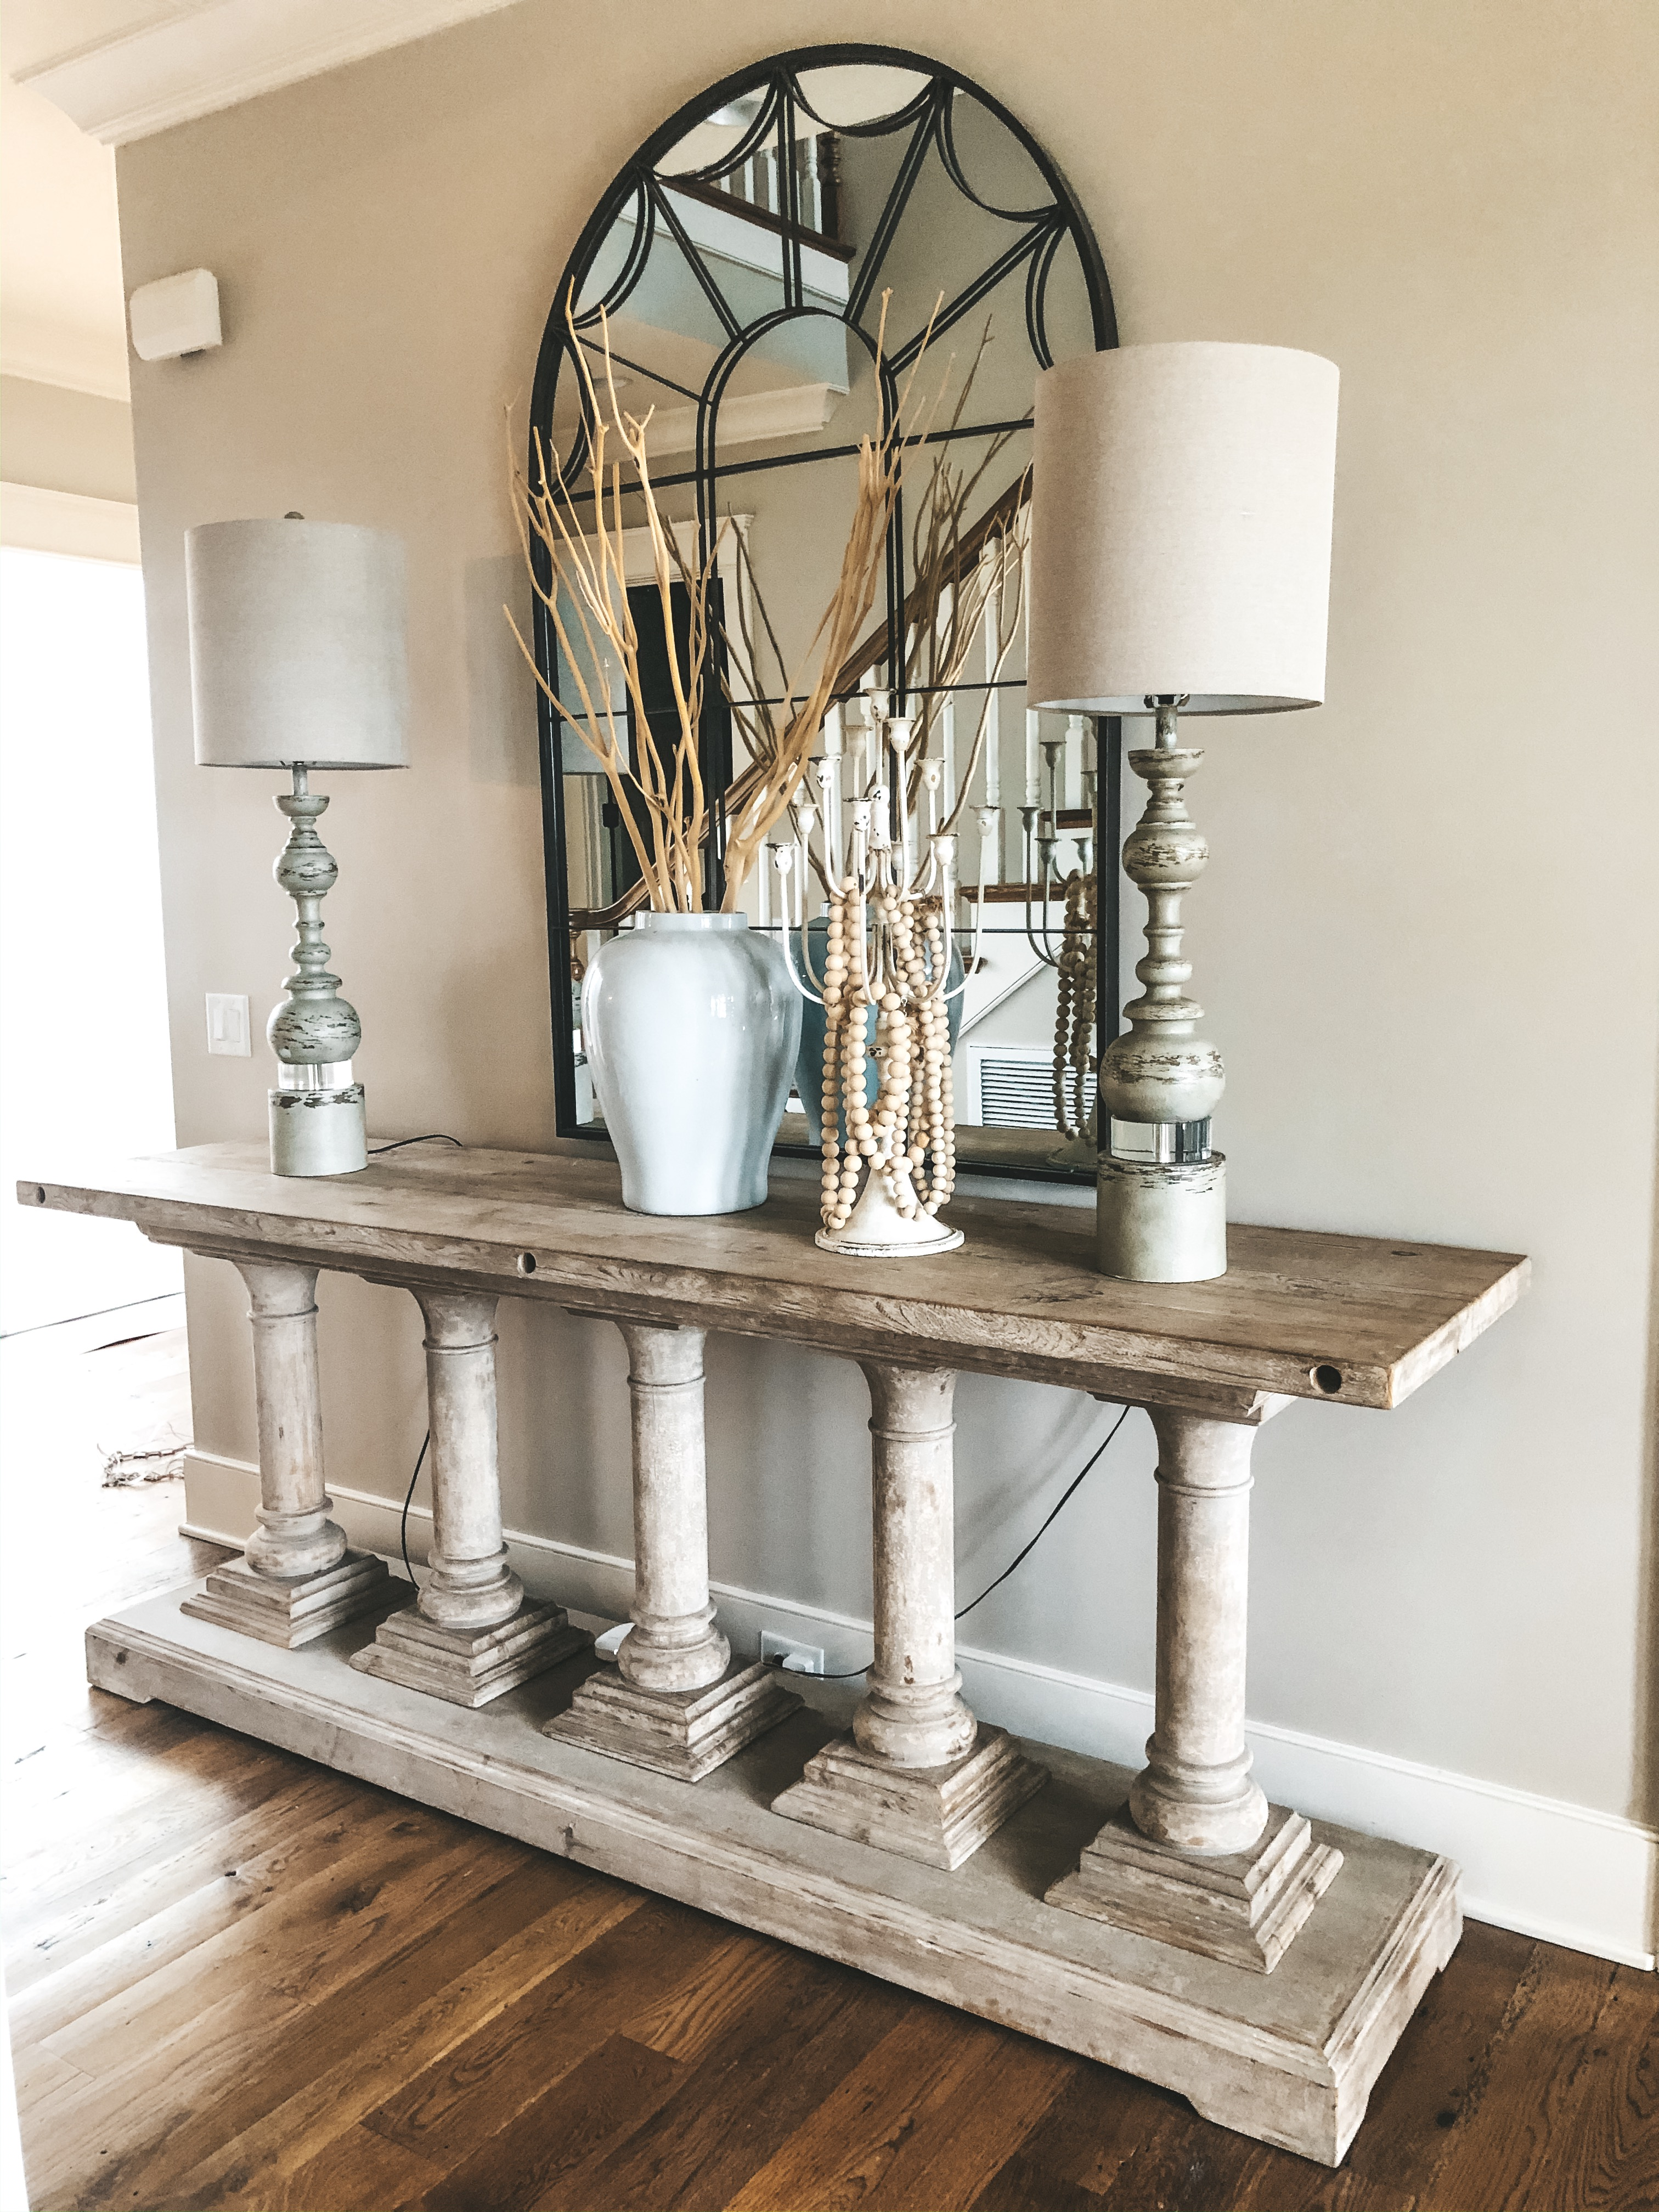 Our Nashville Home: The Entryway